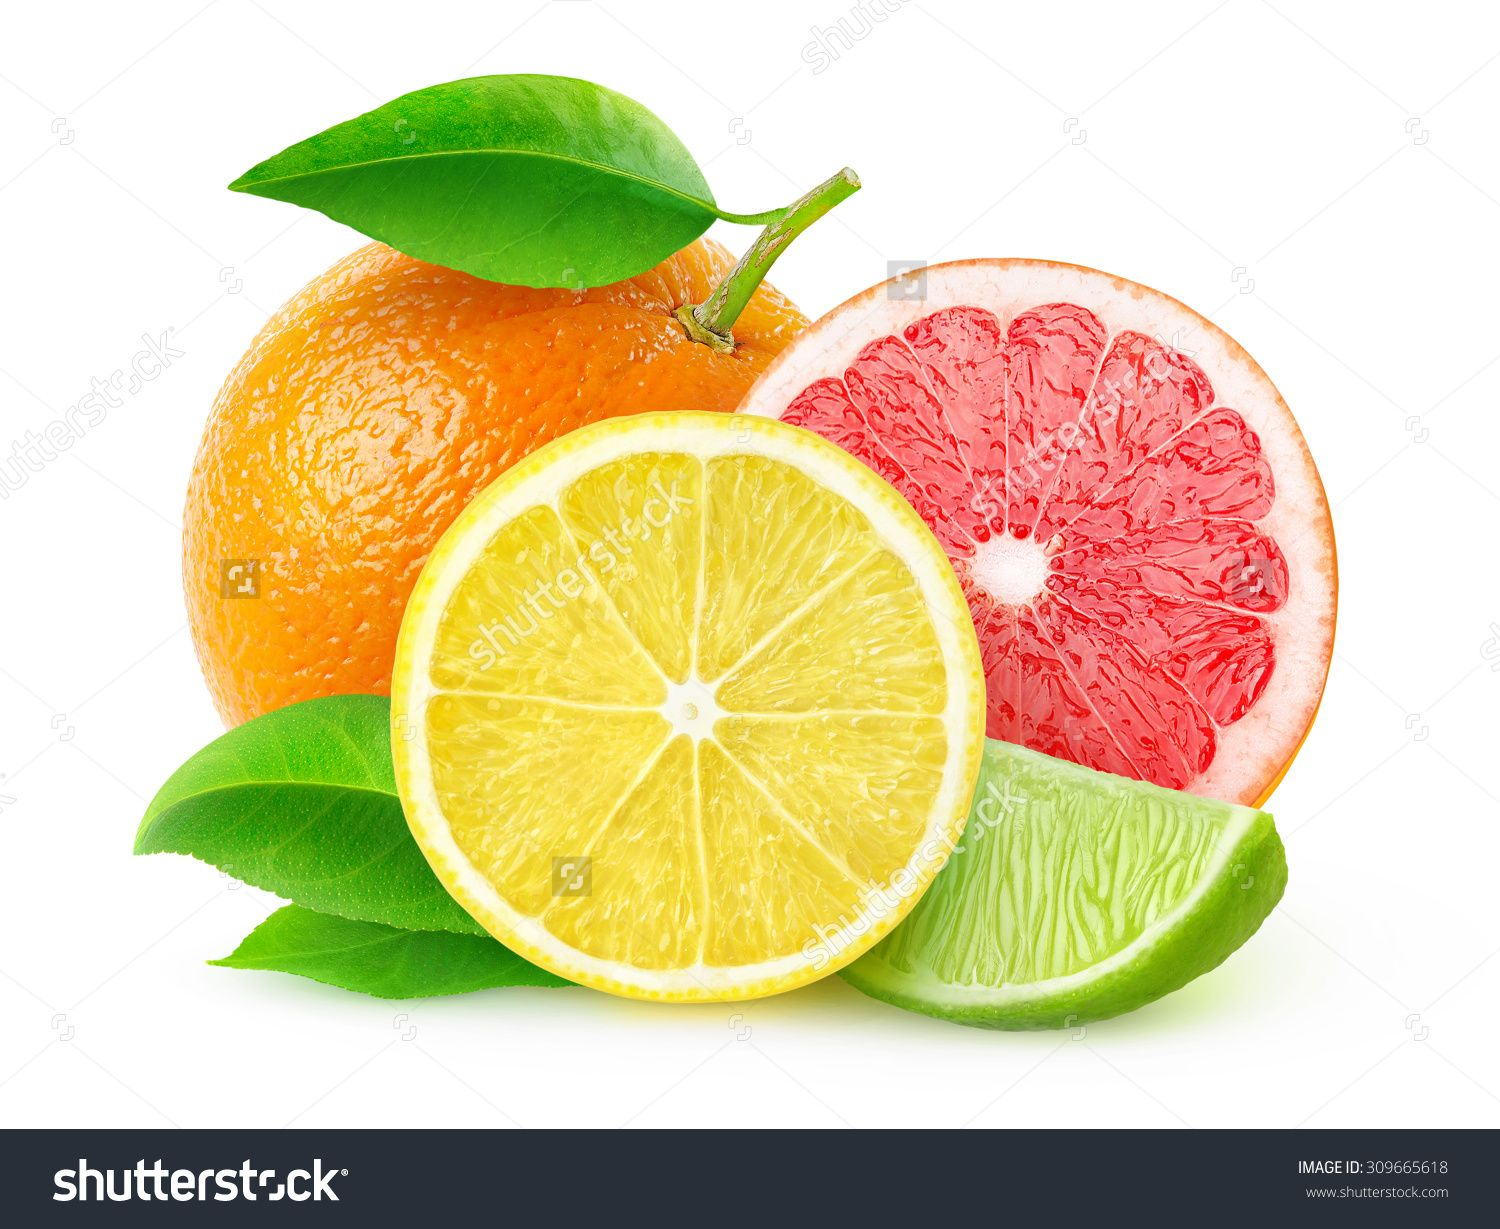 Isolated citrus fruits. Pieces of lemon, lime, pink ...